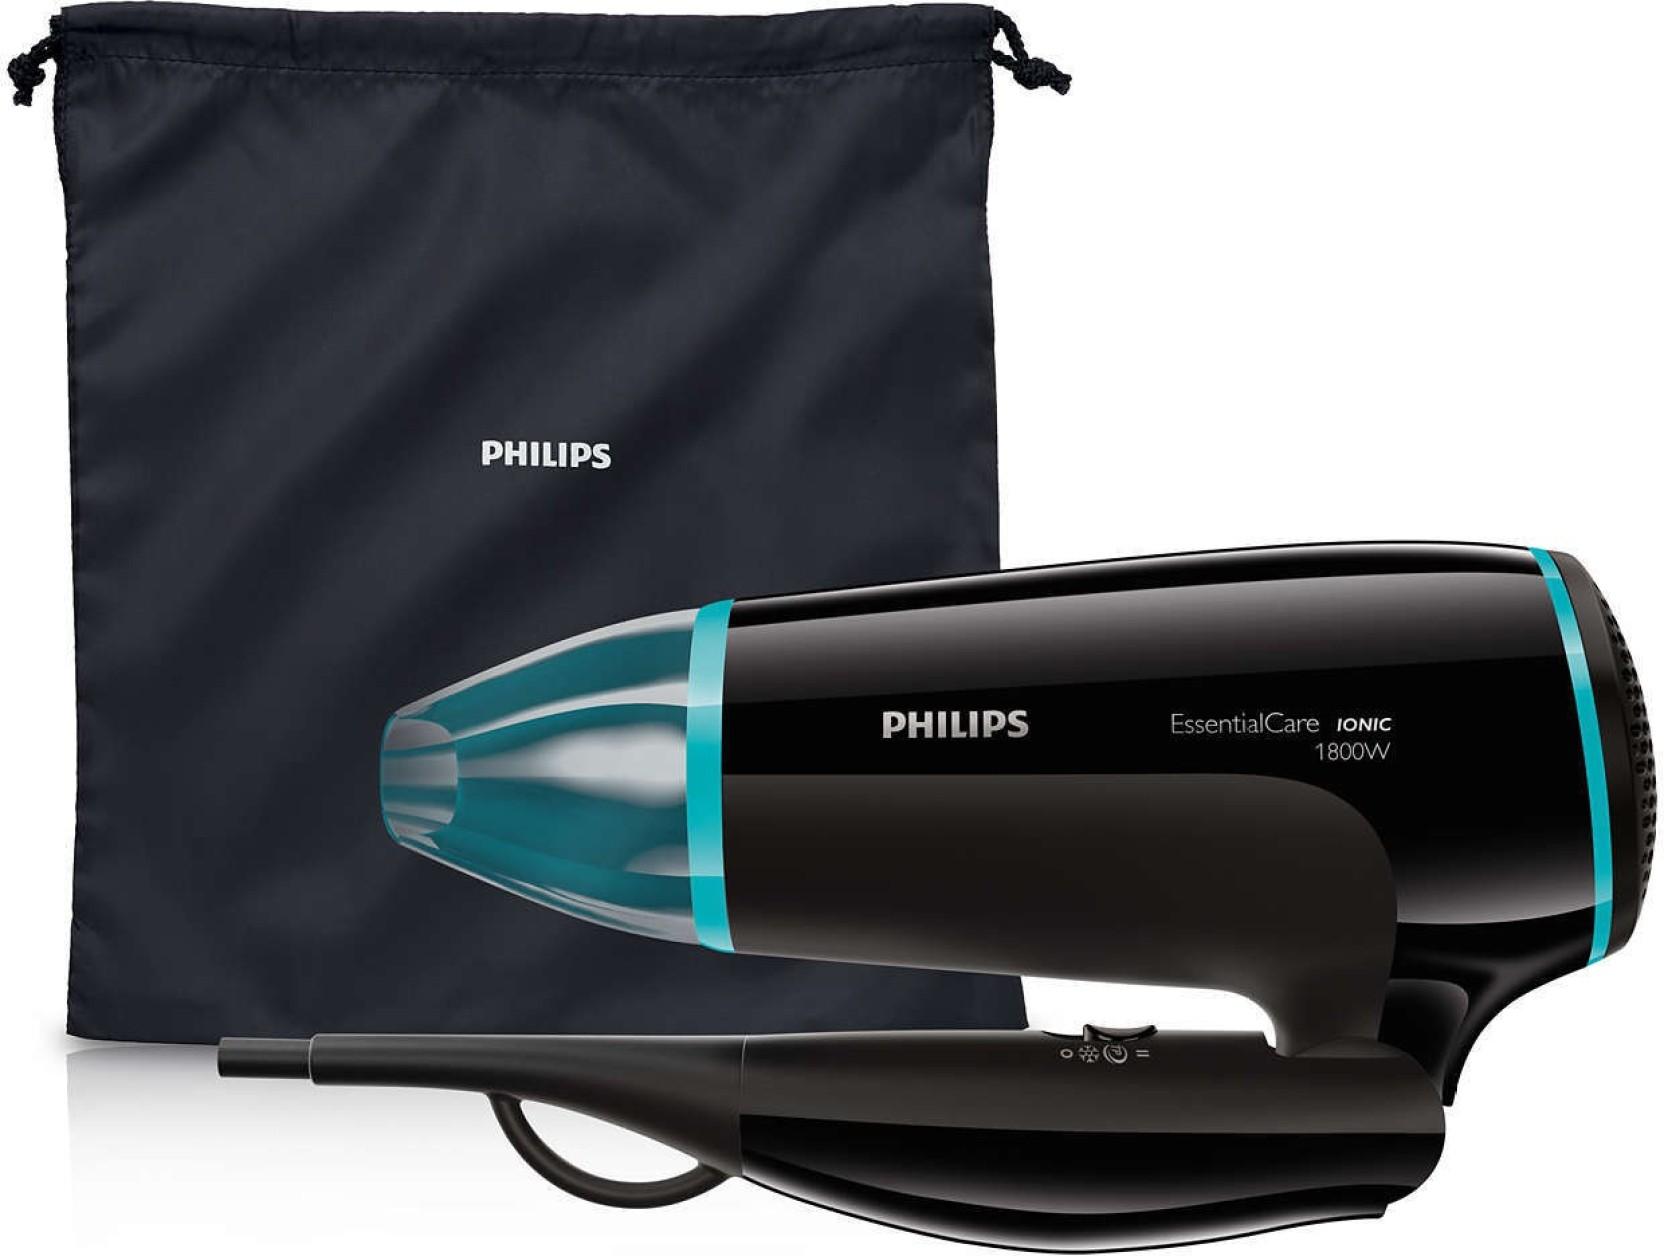 Philips essential care foldable hair dryer powerful drying with ionic  technology (limited edition) Hair Dryer (Black) d959e1da55